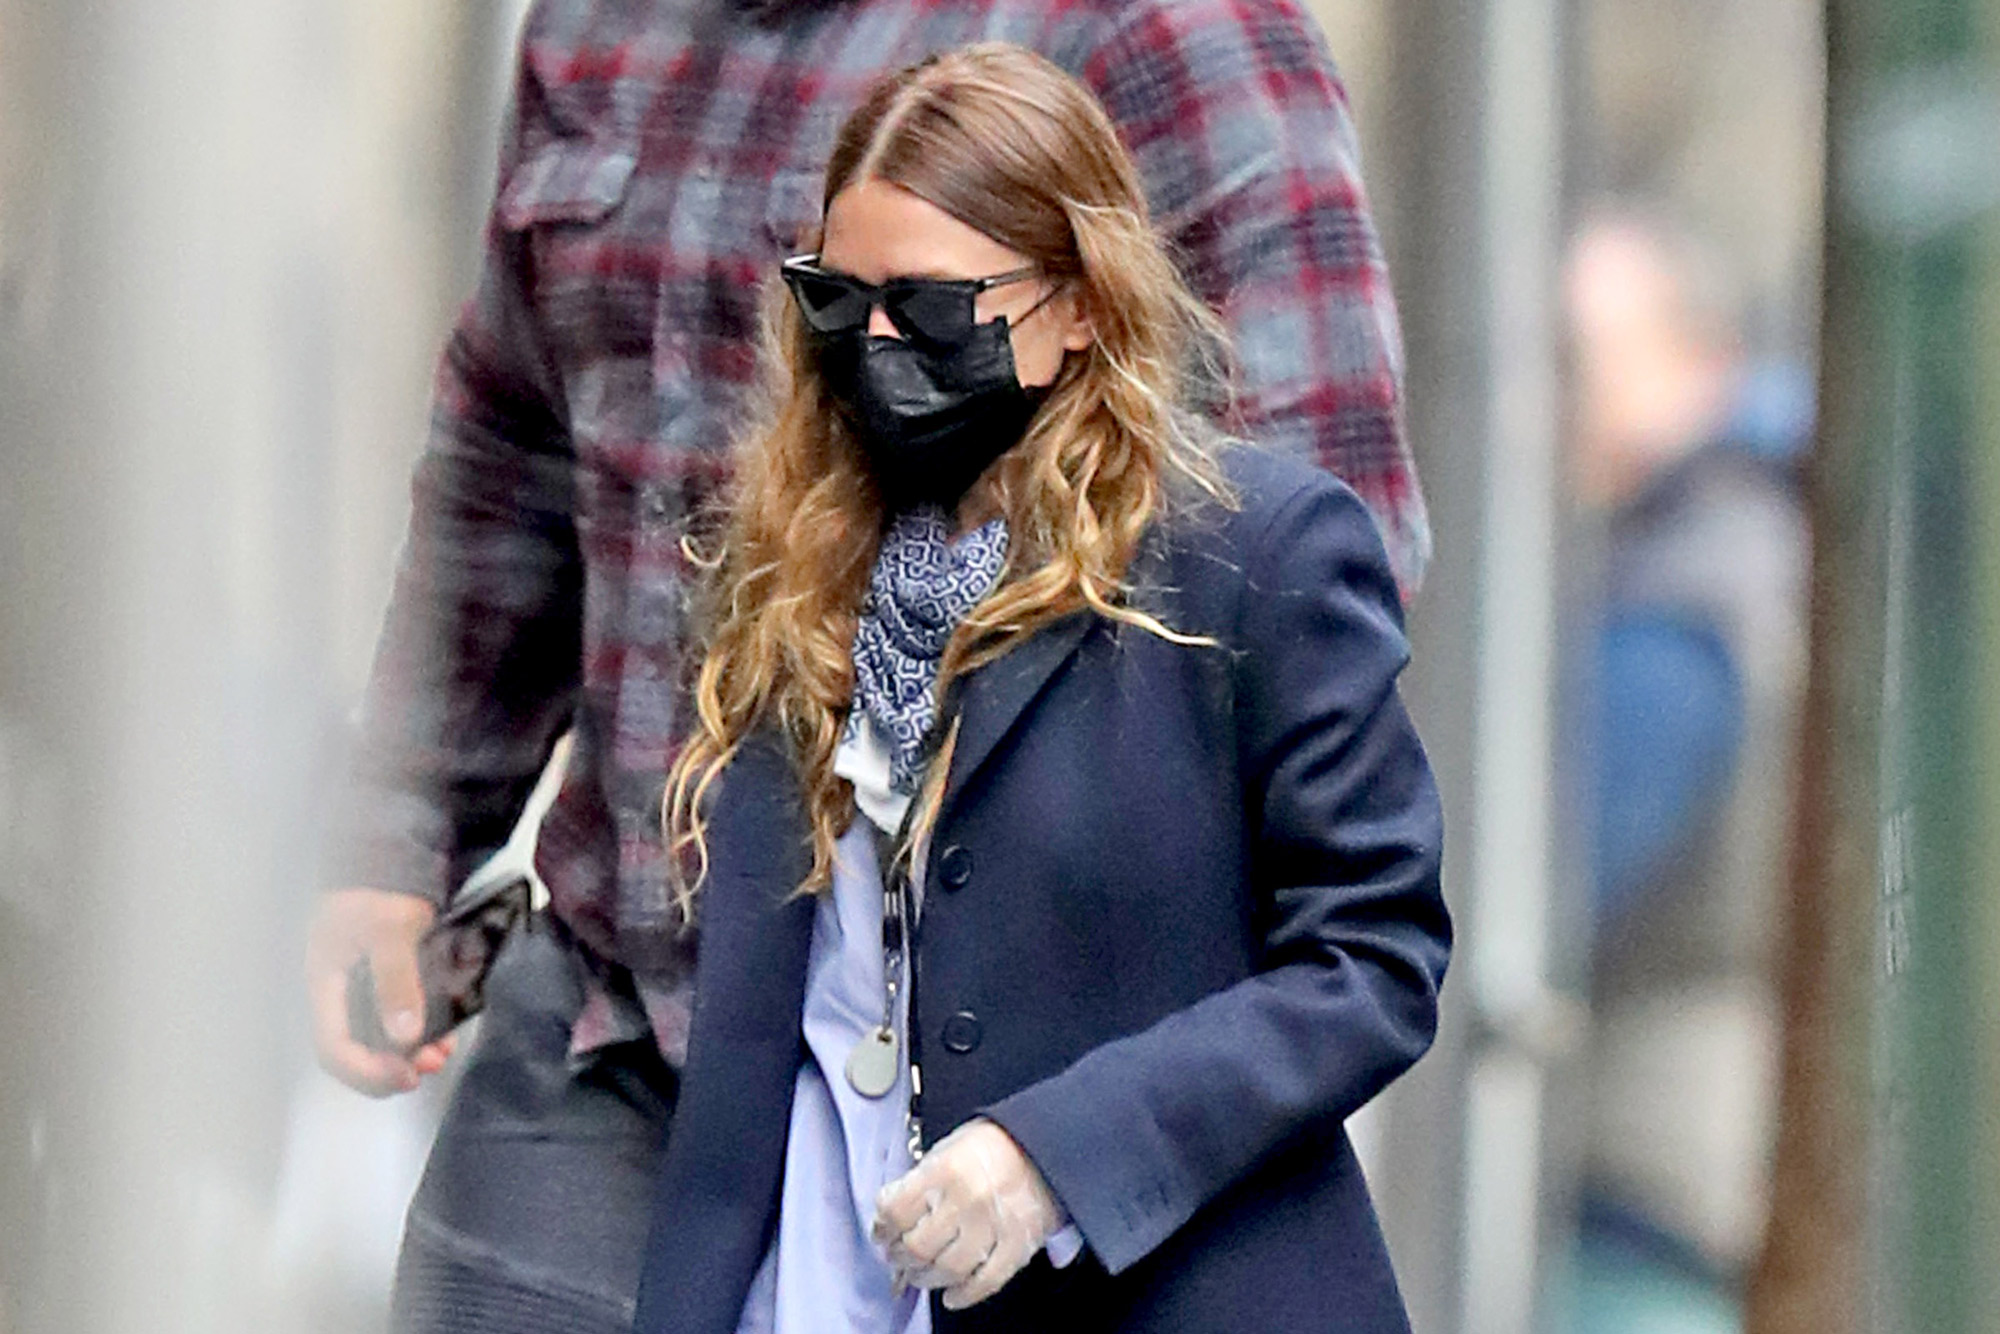 Ashley Olsen Seen In Nyc As Mary Kate Olsen Divorces Olivier Sarkozy